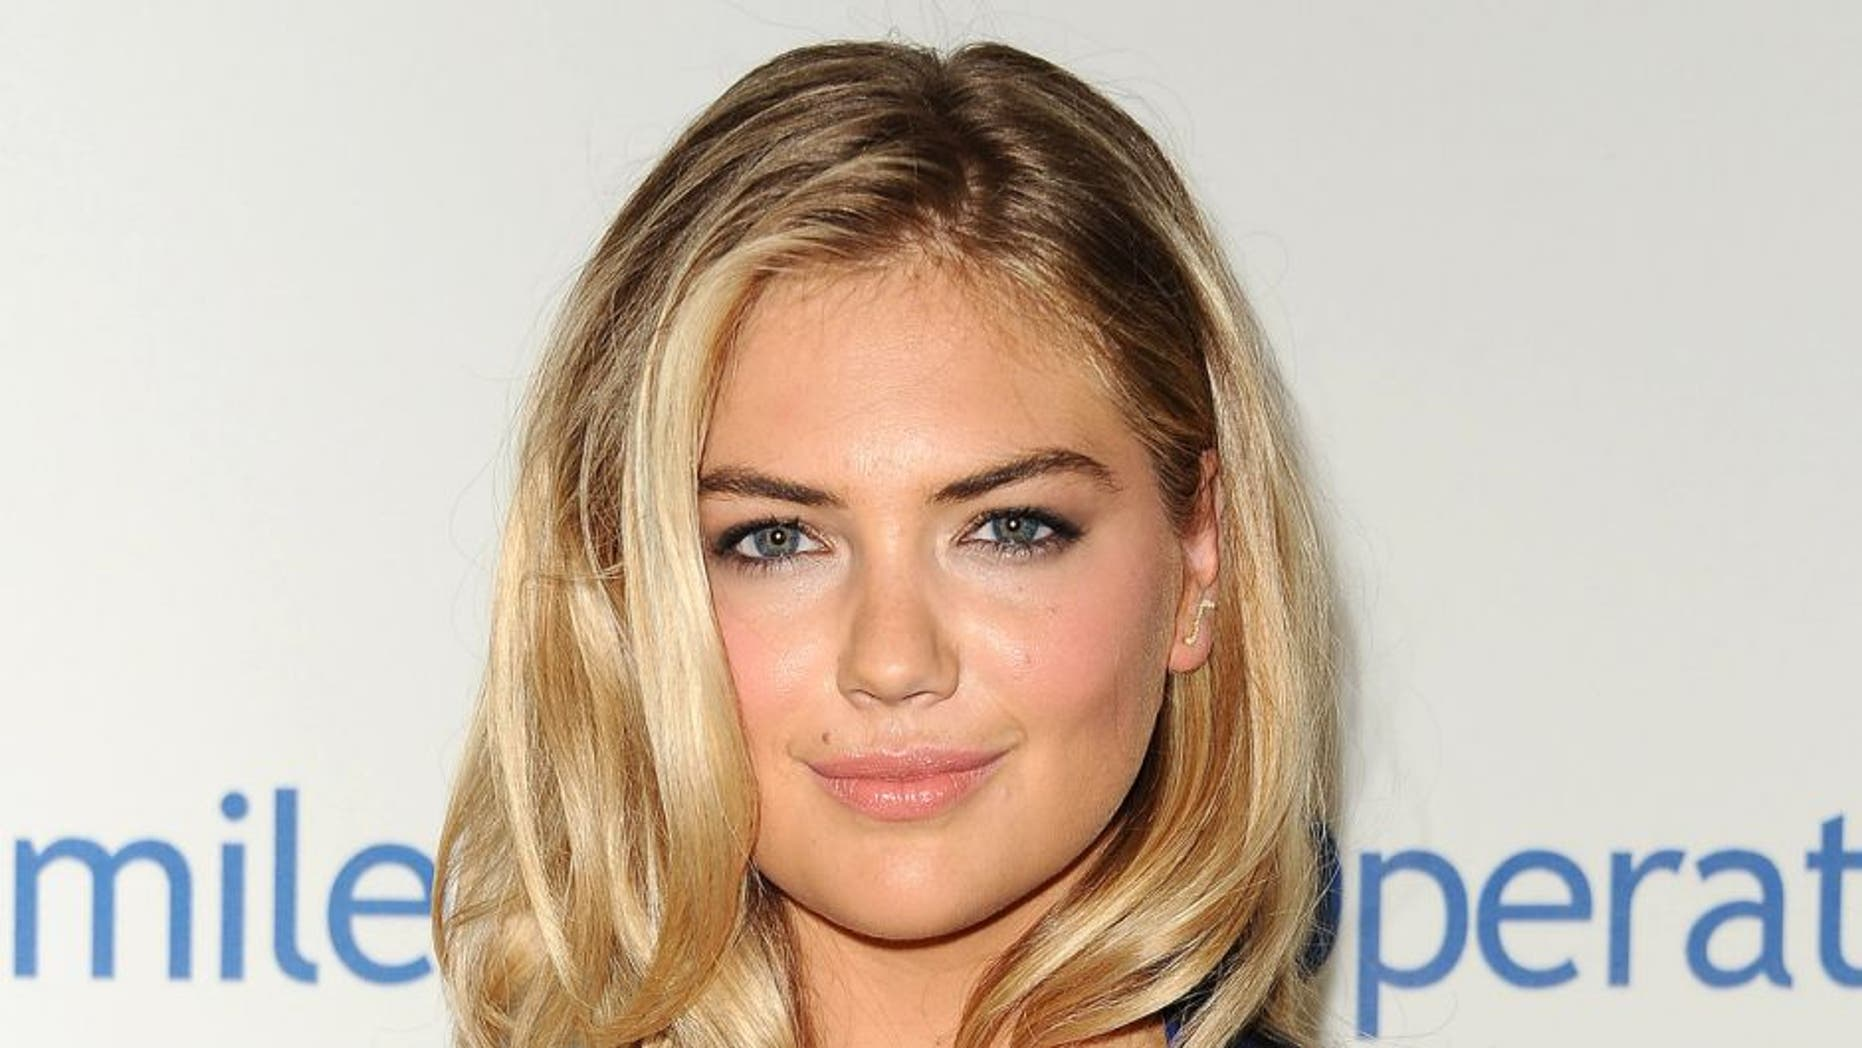 BEVERLY HILLS, CA - OCTOBER 02: Kate Upton attends Operation Smile's 2015 Smile Gala at the Beverly Wilshire Four Seasons Hotel on October 2, 2015 in Beverly Hills, California. (Photo by Jason LaVeris/FilmMagic)